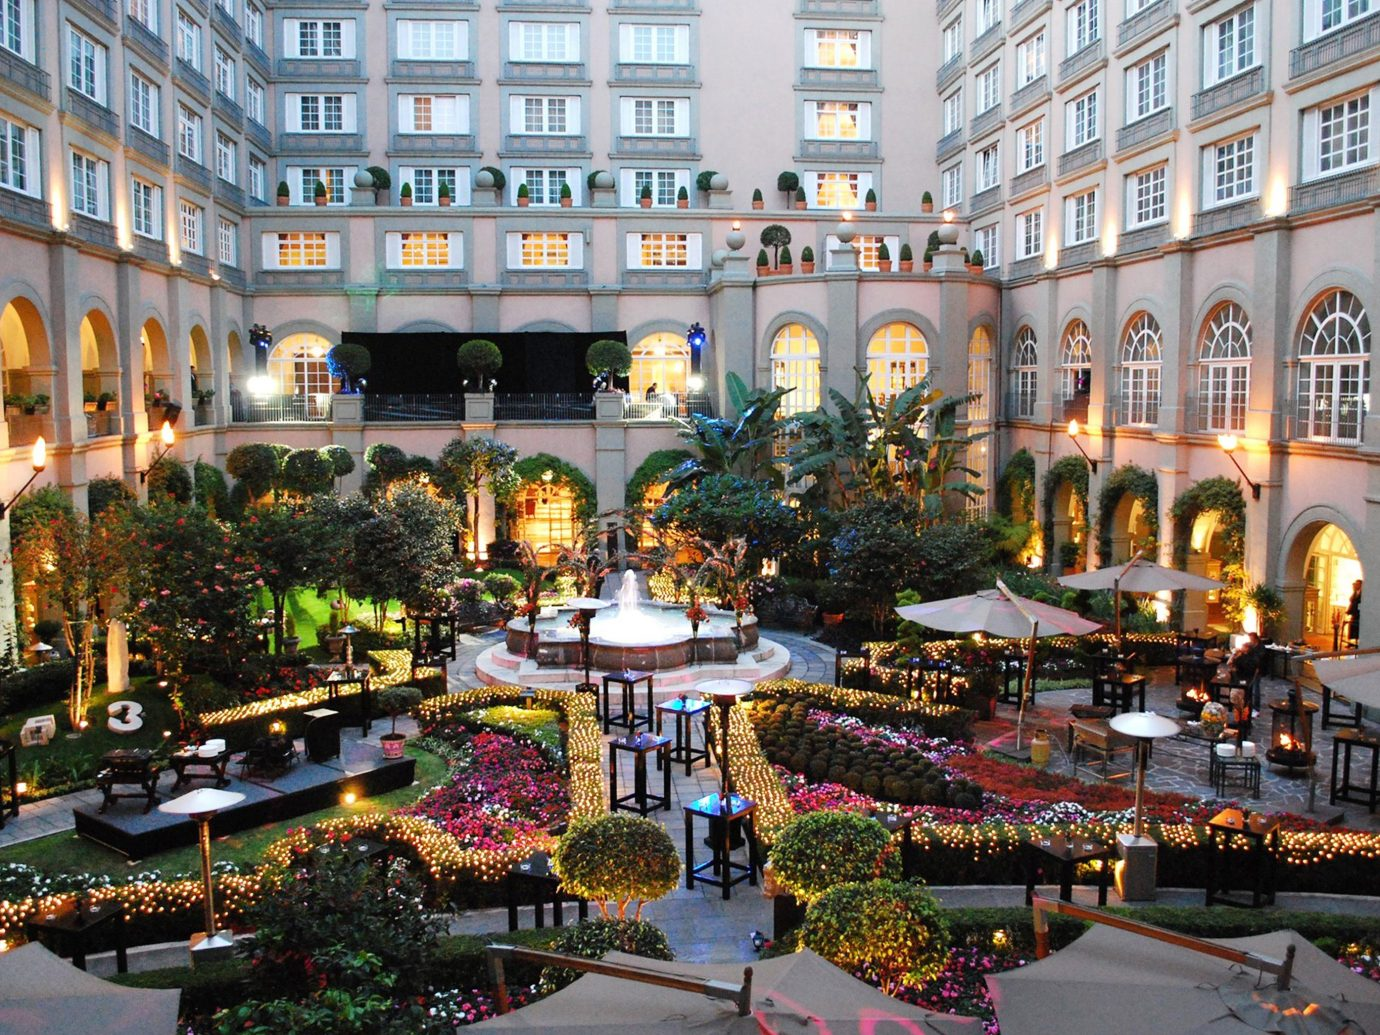 Hotels building outdoor plaza City Downtown shopping mall town square condominium palace apartment building Resort